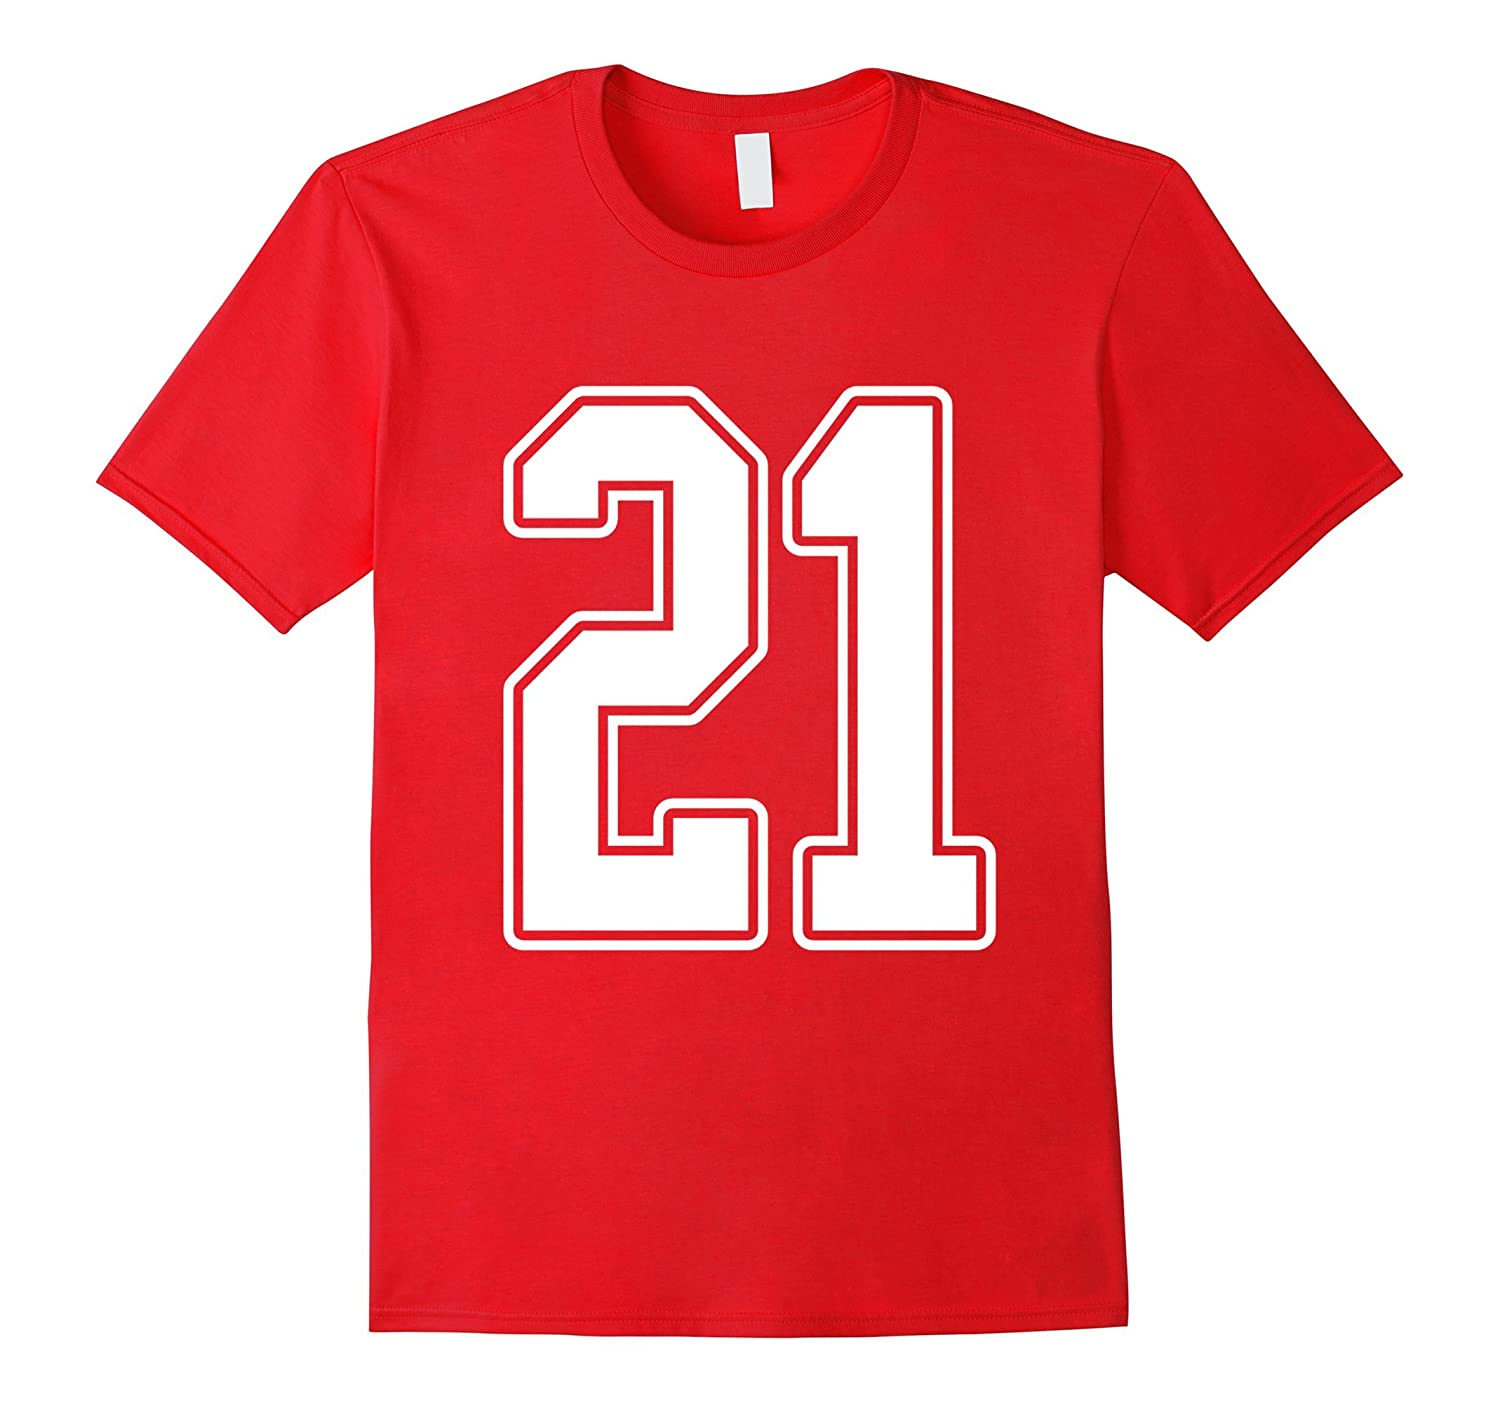 #21 White Outline Number 21 Sports Fan Jersey Style T-Shirt-ANZ